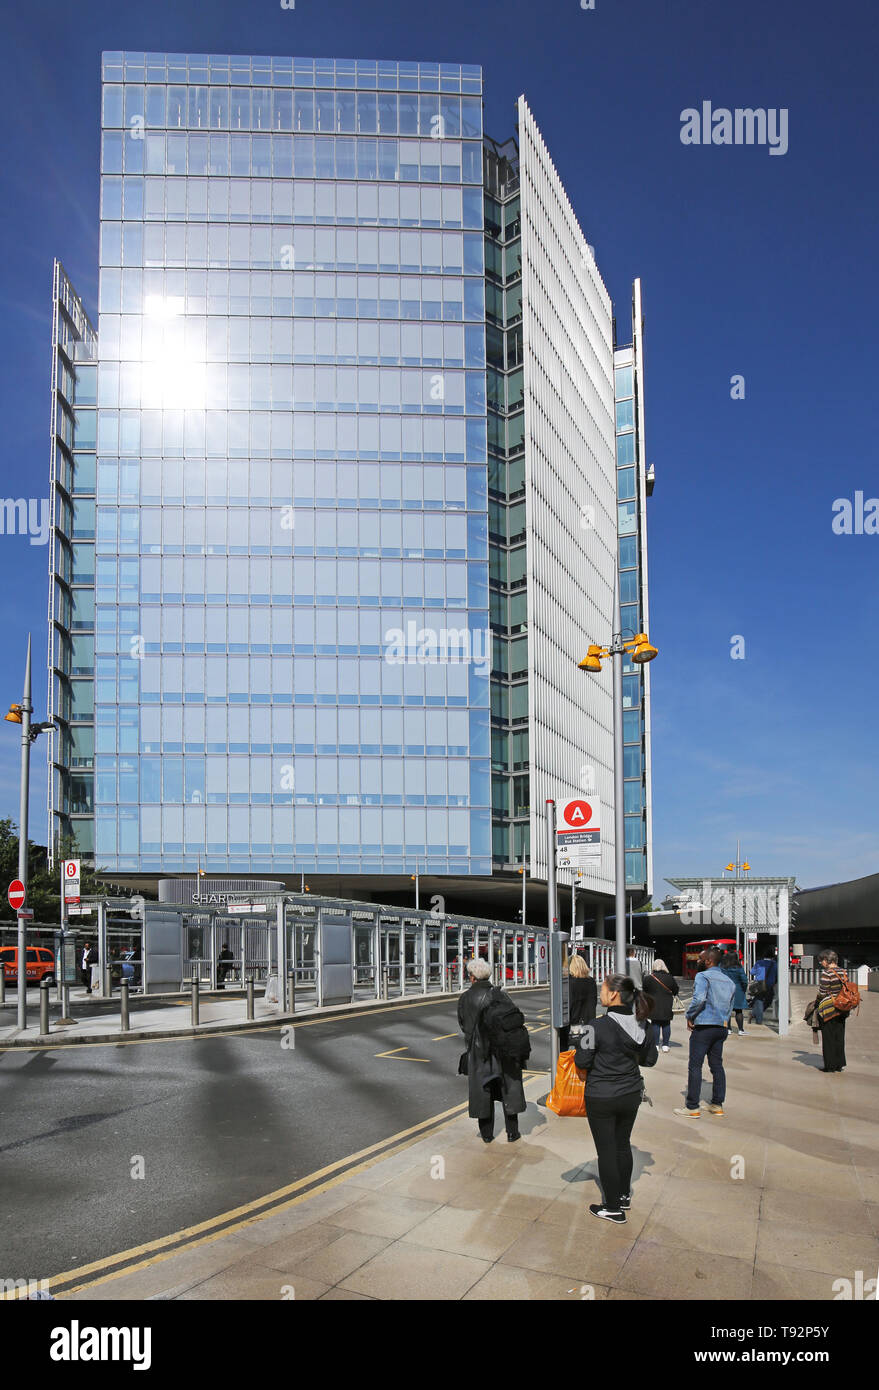 The new London Bridge bus station and taxi rank in front of The News Building, London offices of Rupert Murdoch's News Corporation. - Stock Image